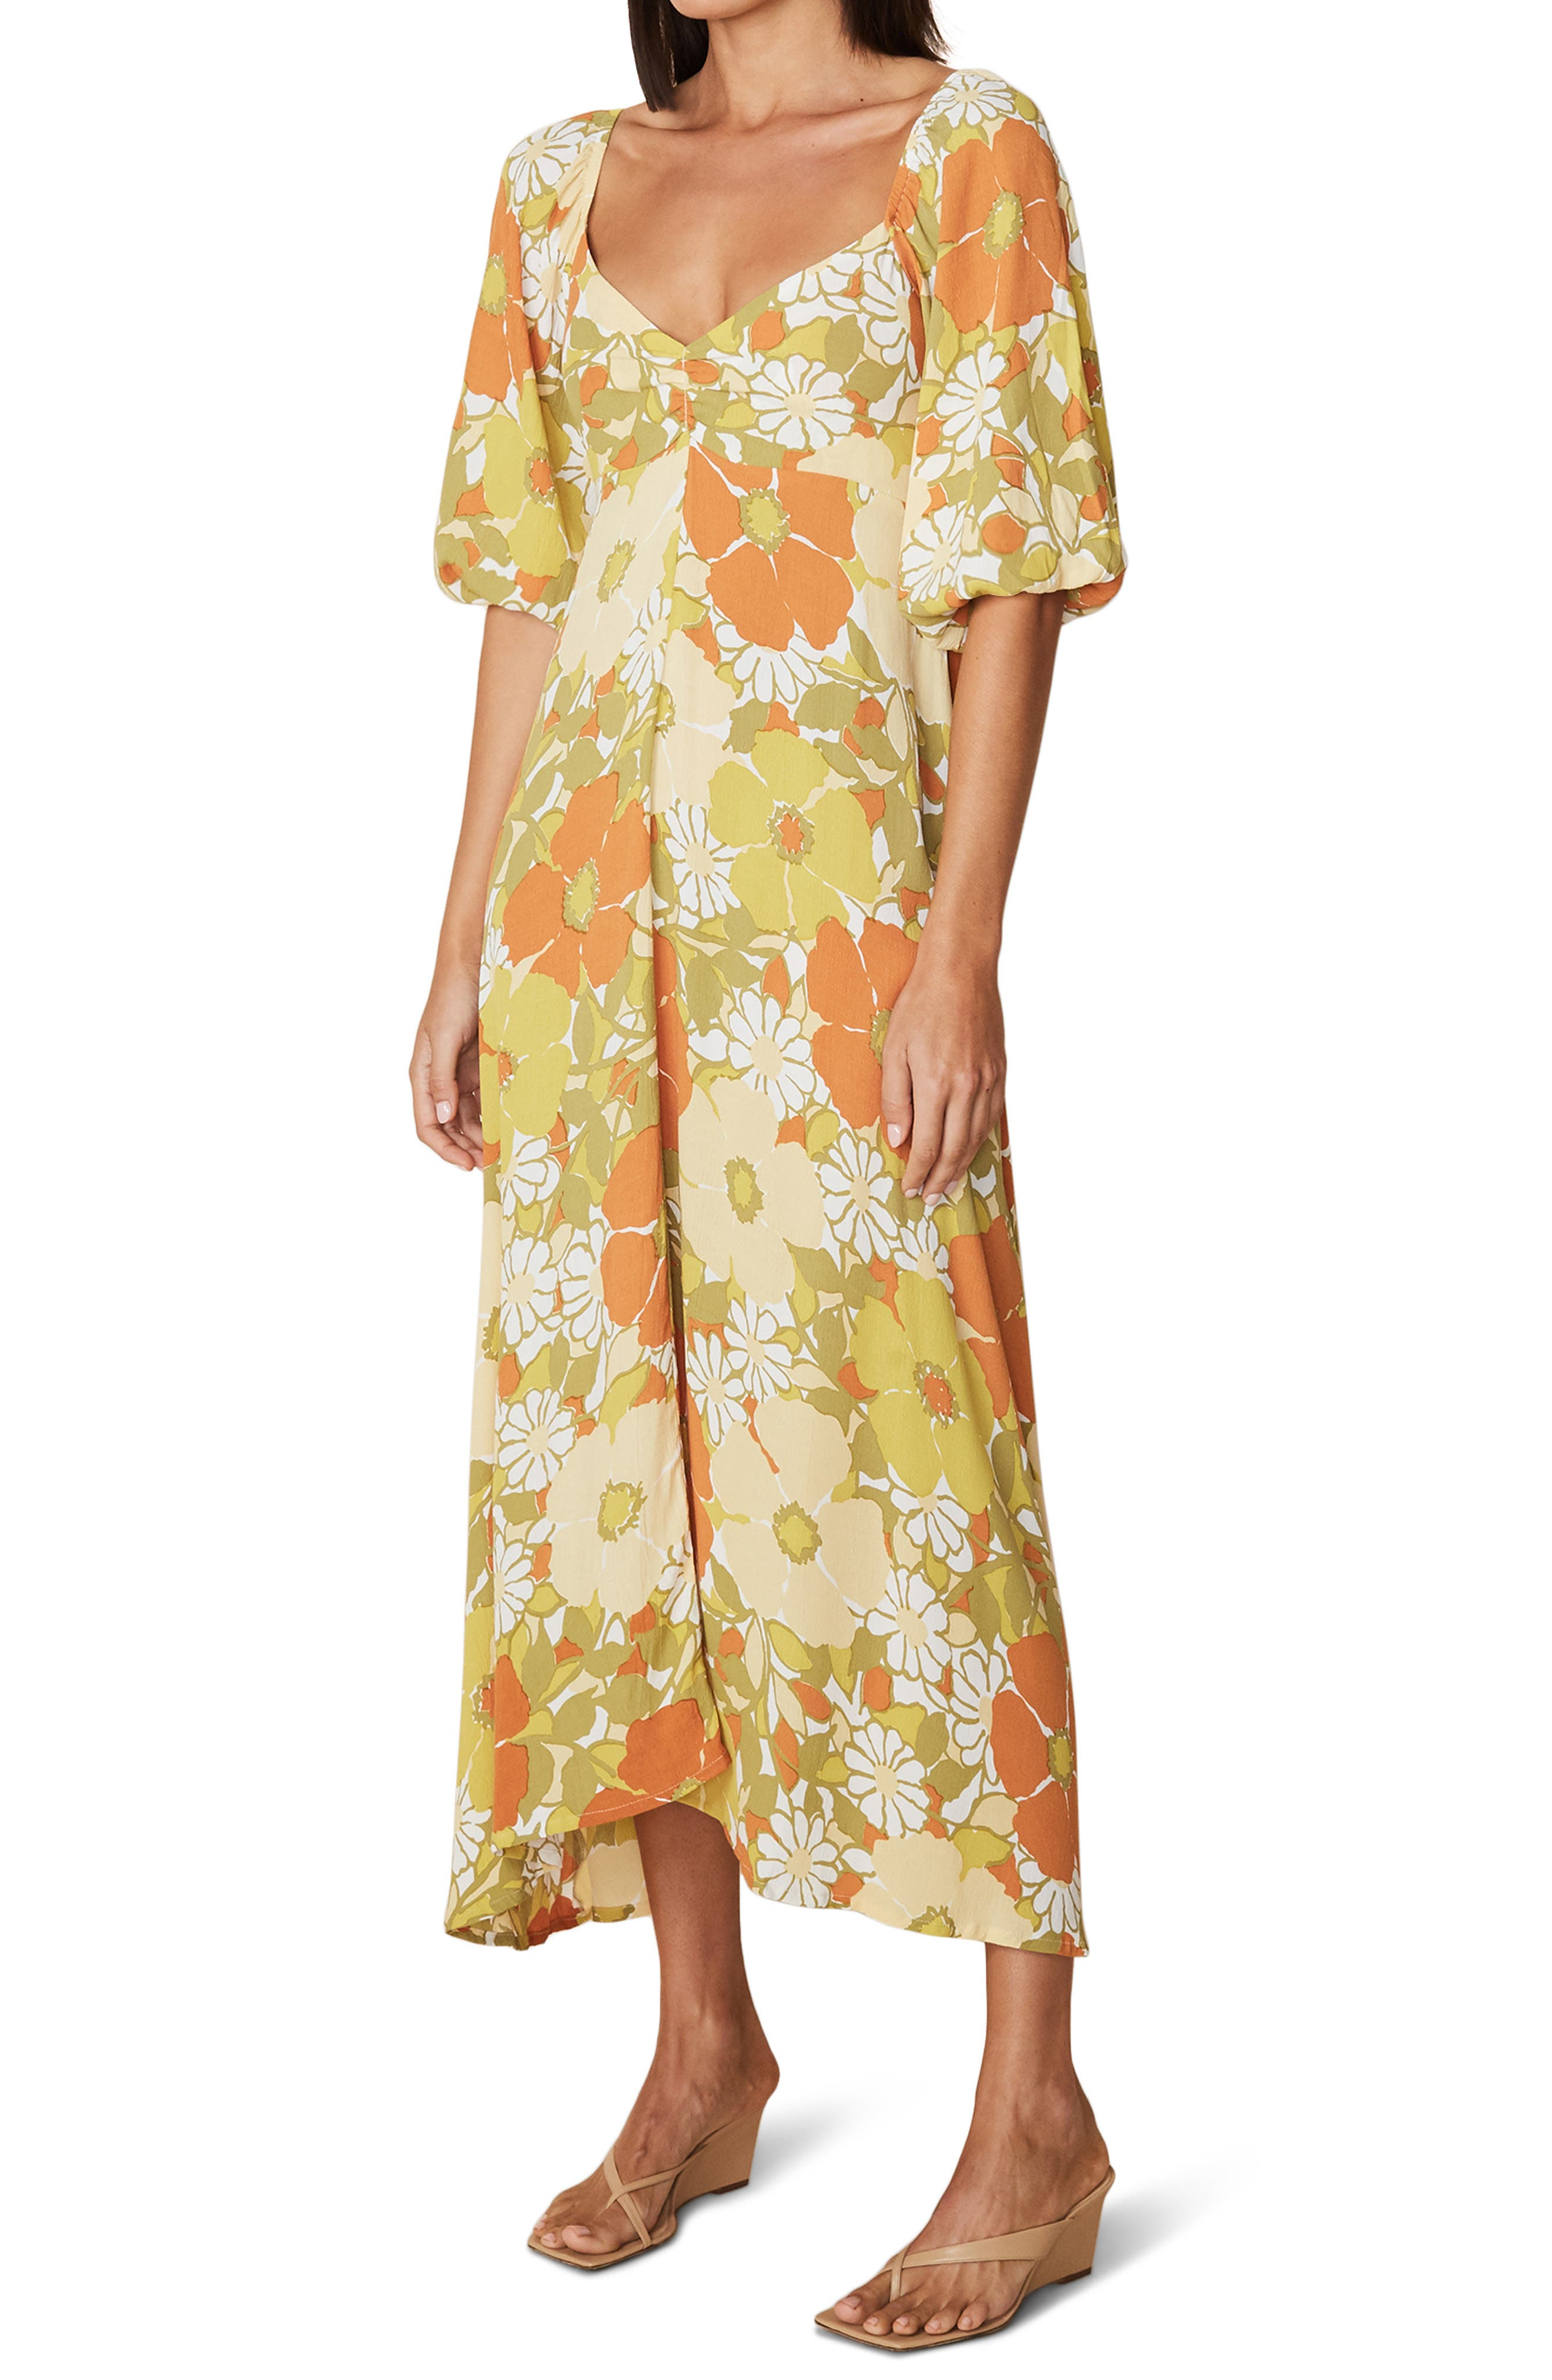 Shop Queen's Gambit Outfits – 60s Clothes Womens Faithfull The Brand Imane Floral Midi Dress Size XX-Large - Beige $209.00 AT vintagedancer.com